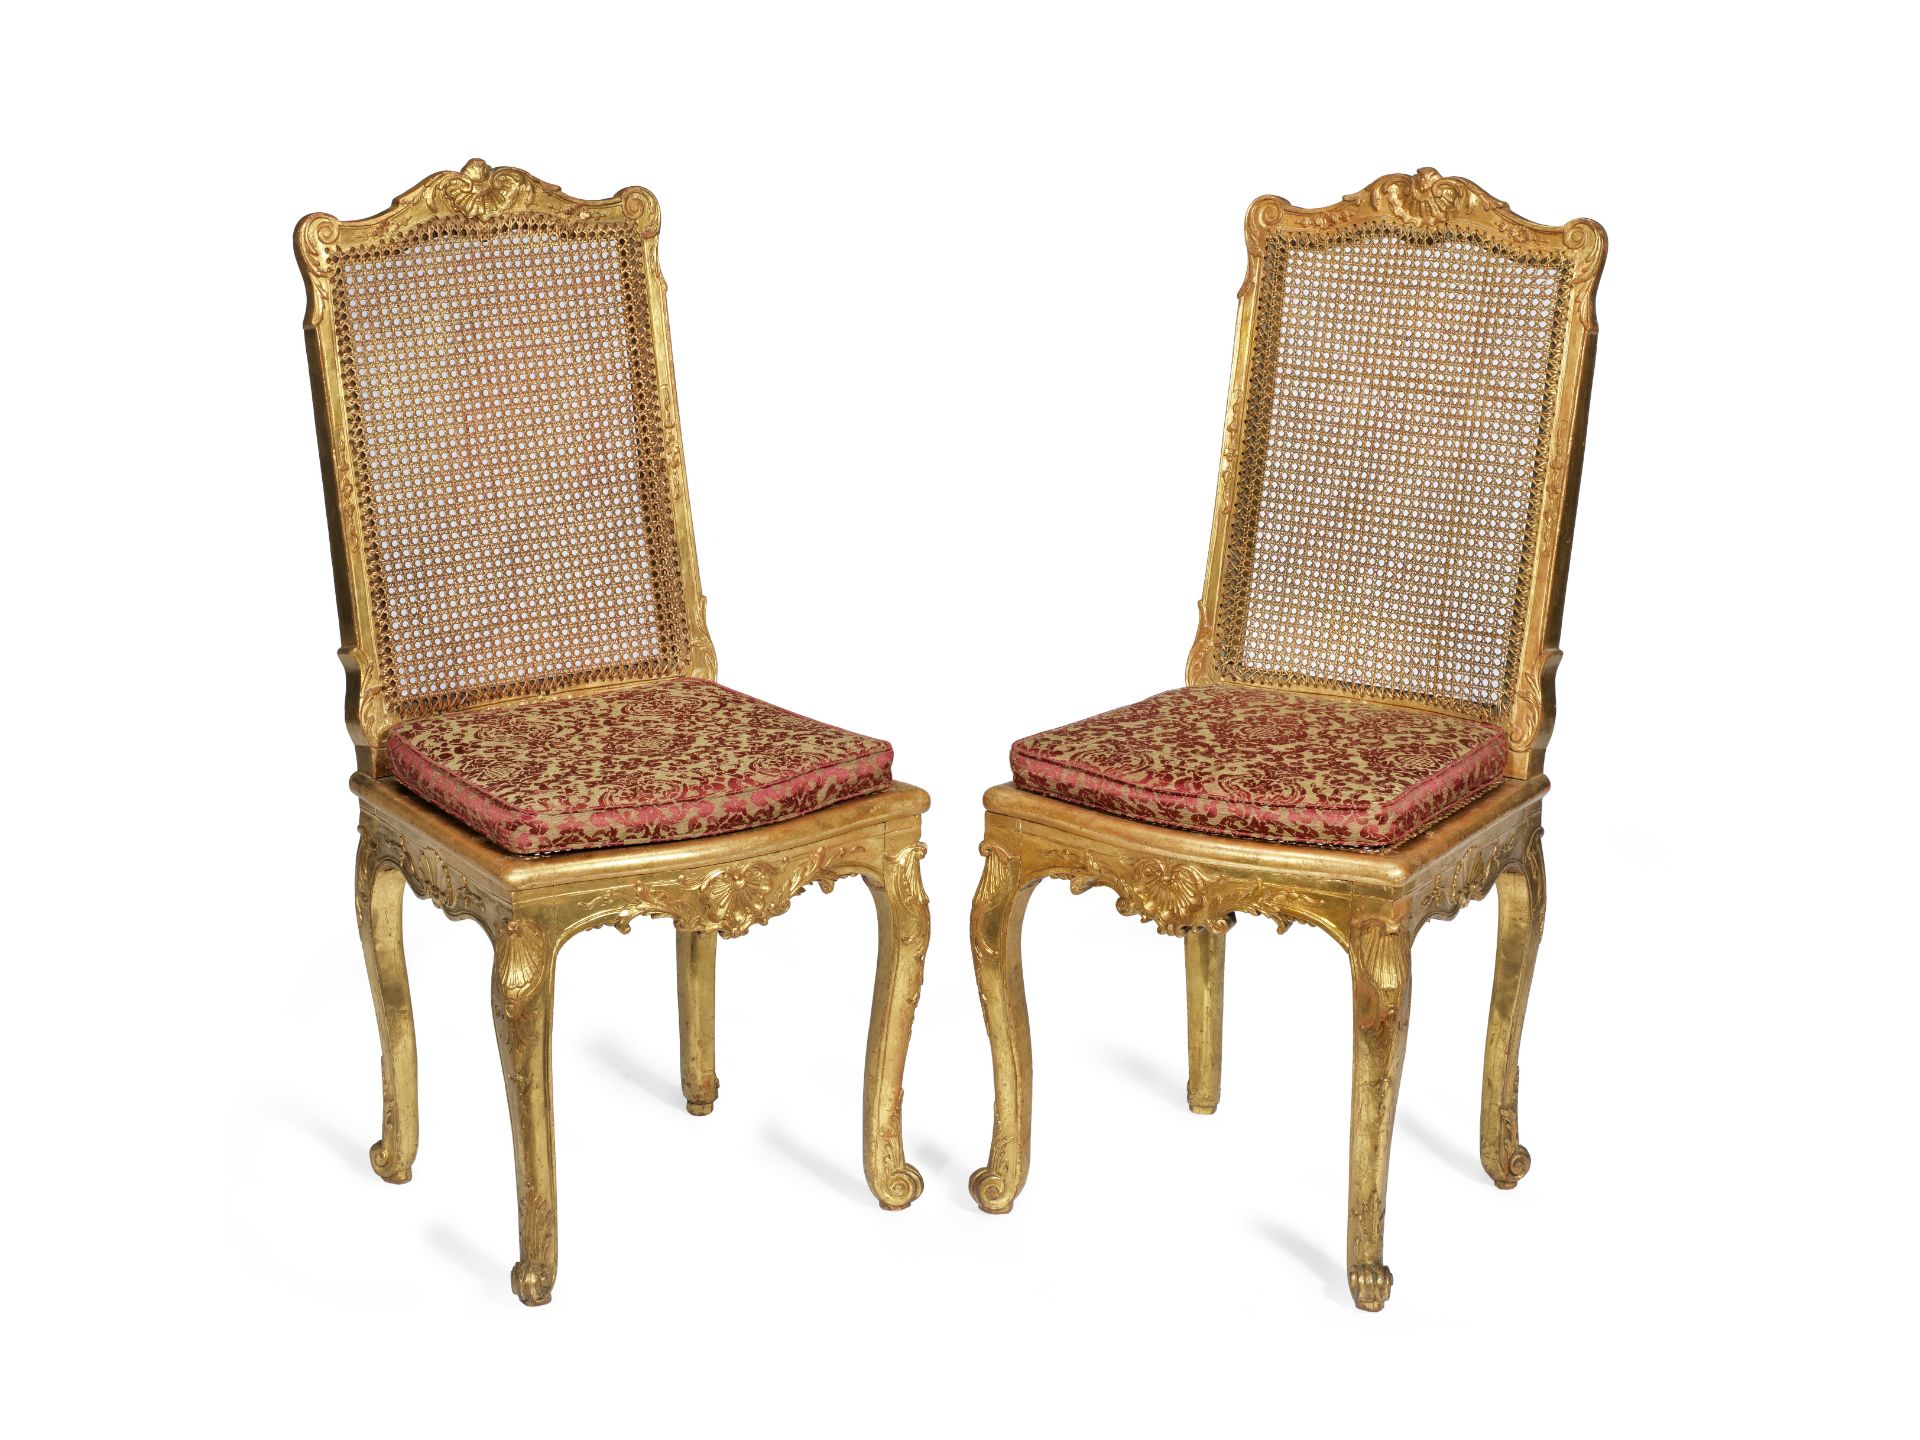 Los 124 - A pair of Louis Philippe giltwood salon chaises in the Regence style (2)